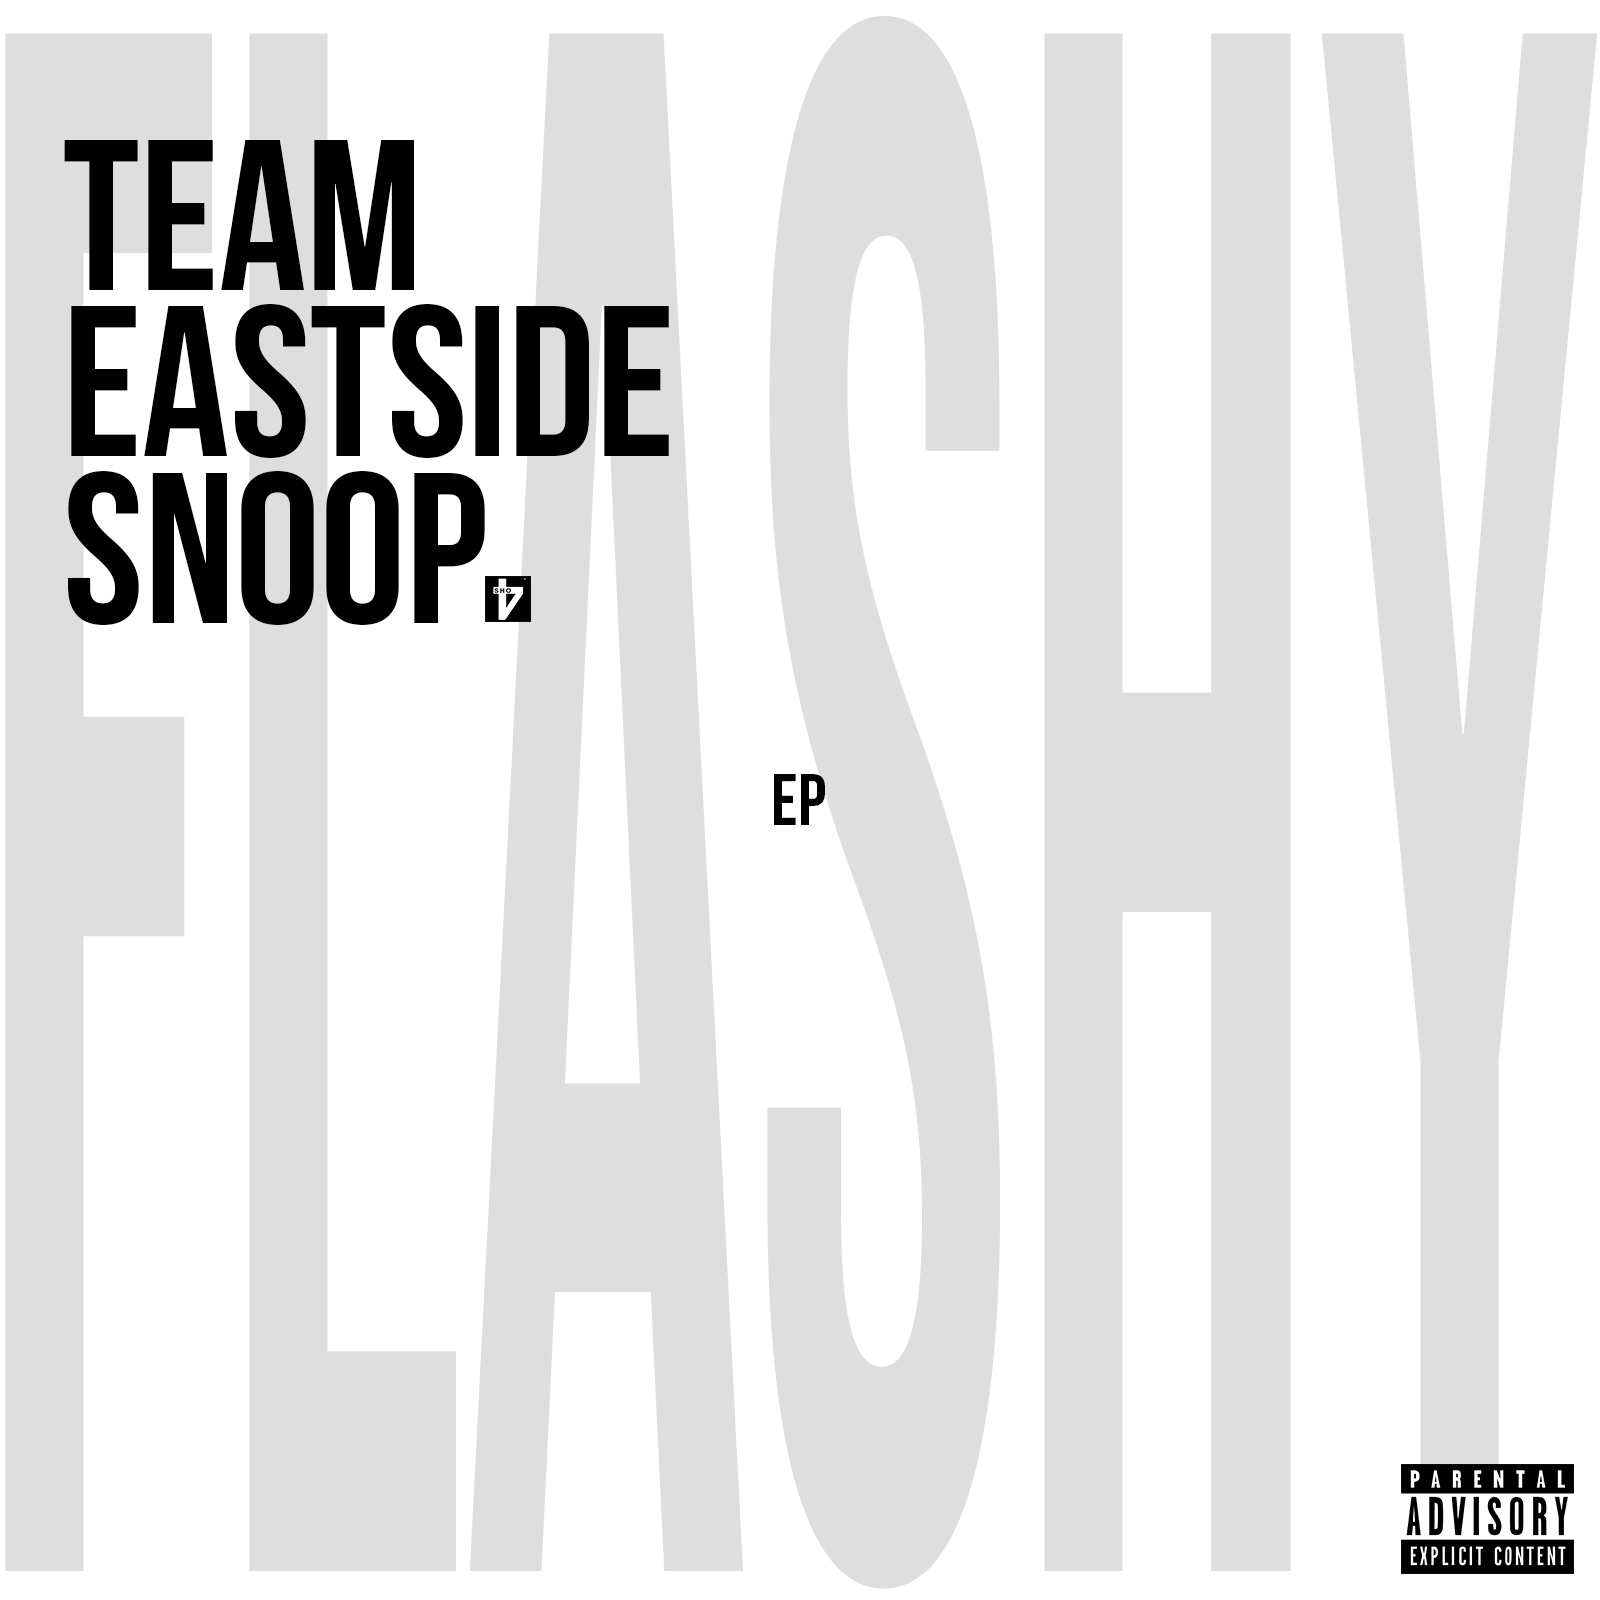 Team Eastside Snoop